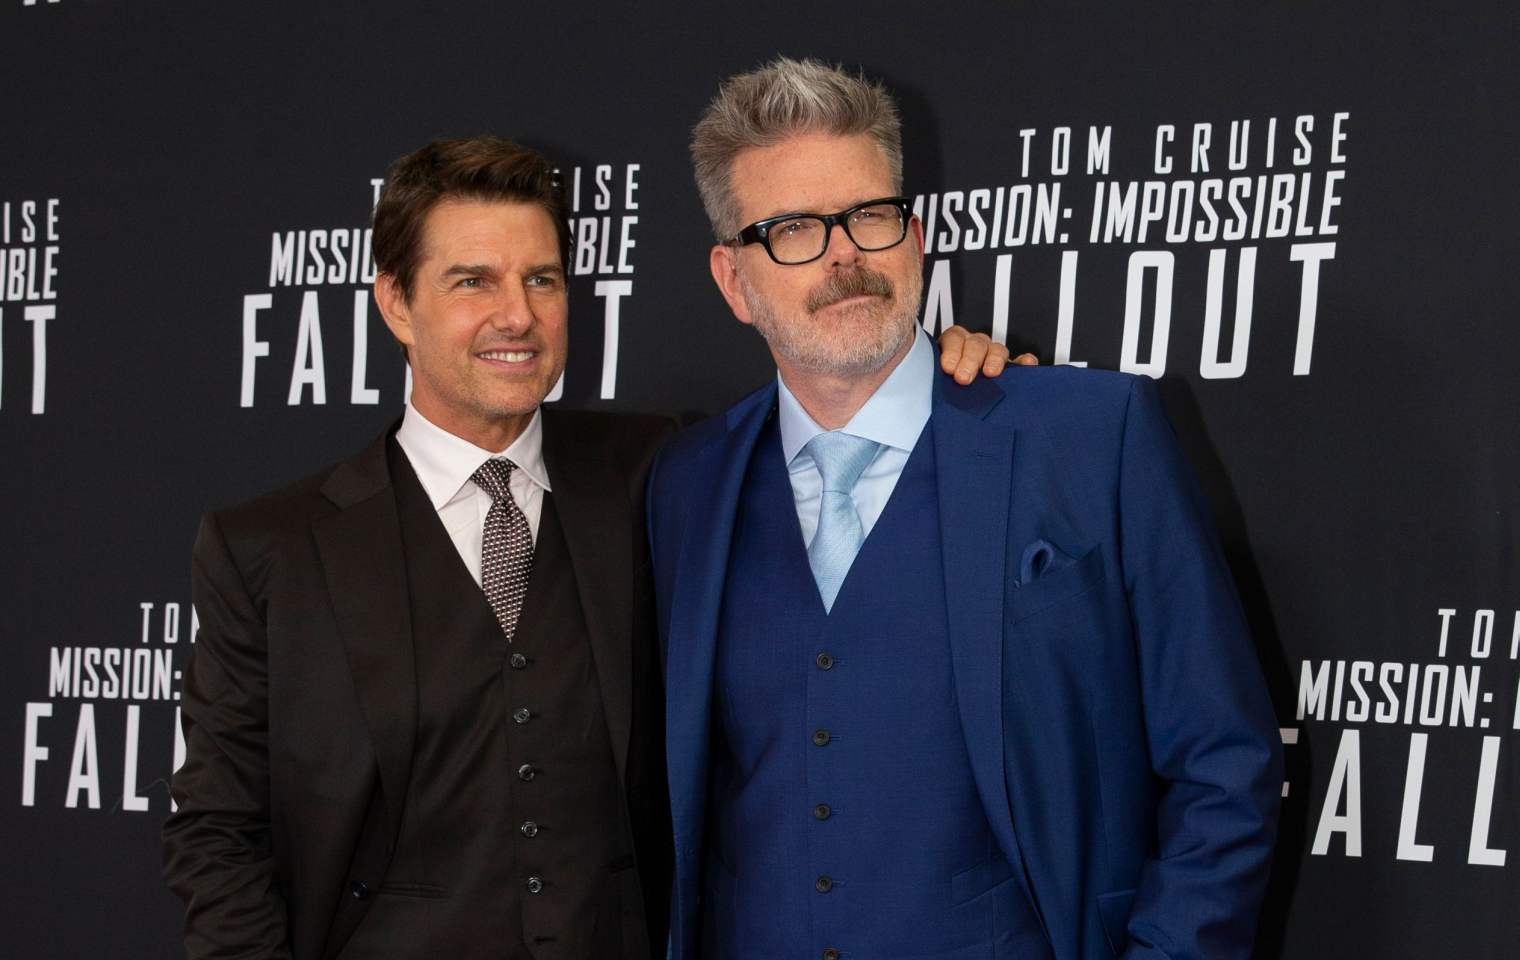 68308 mission impossible 6 fallout